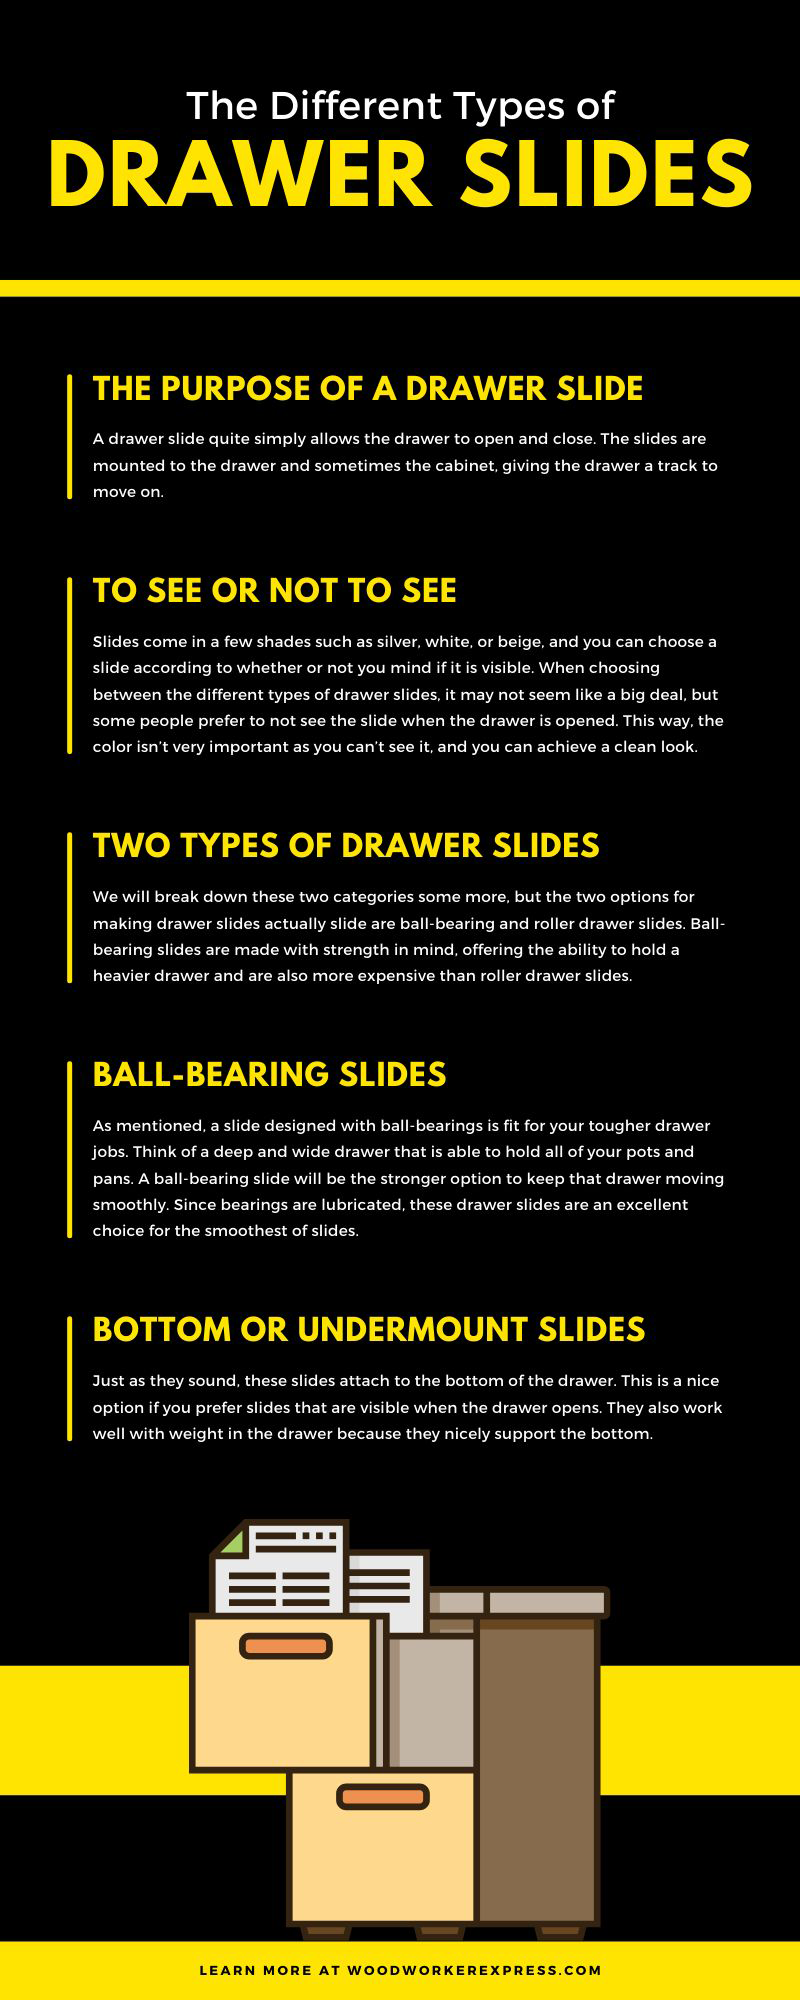 Infographic - The Different Types of Drawer slides